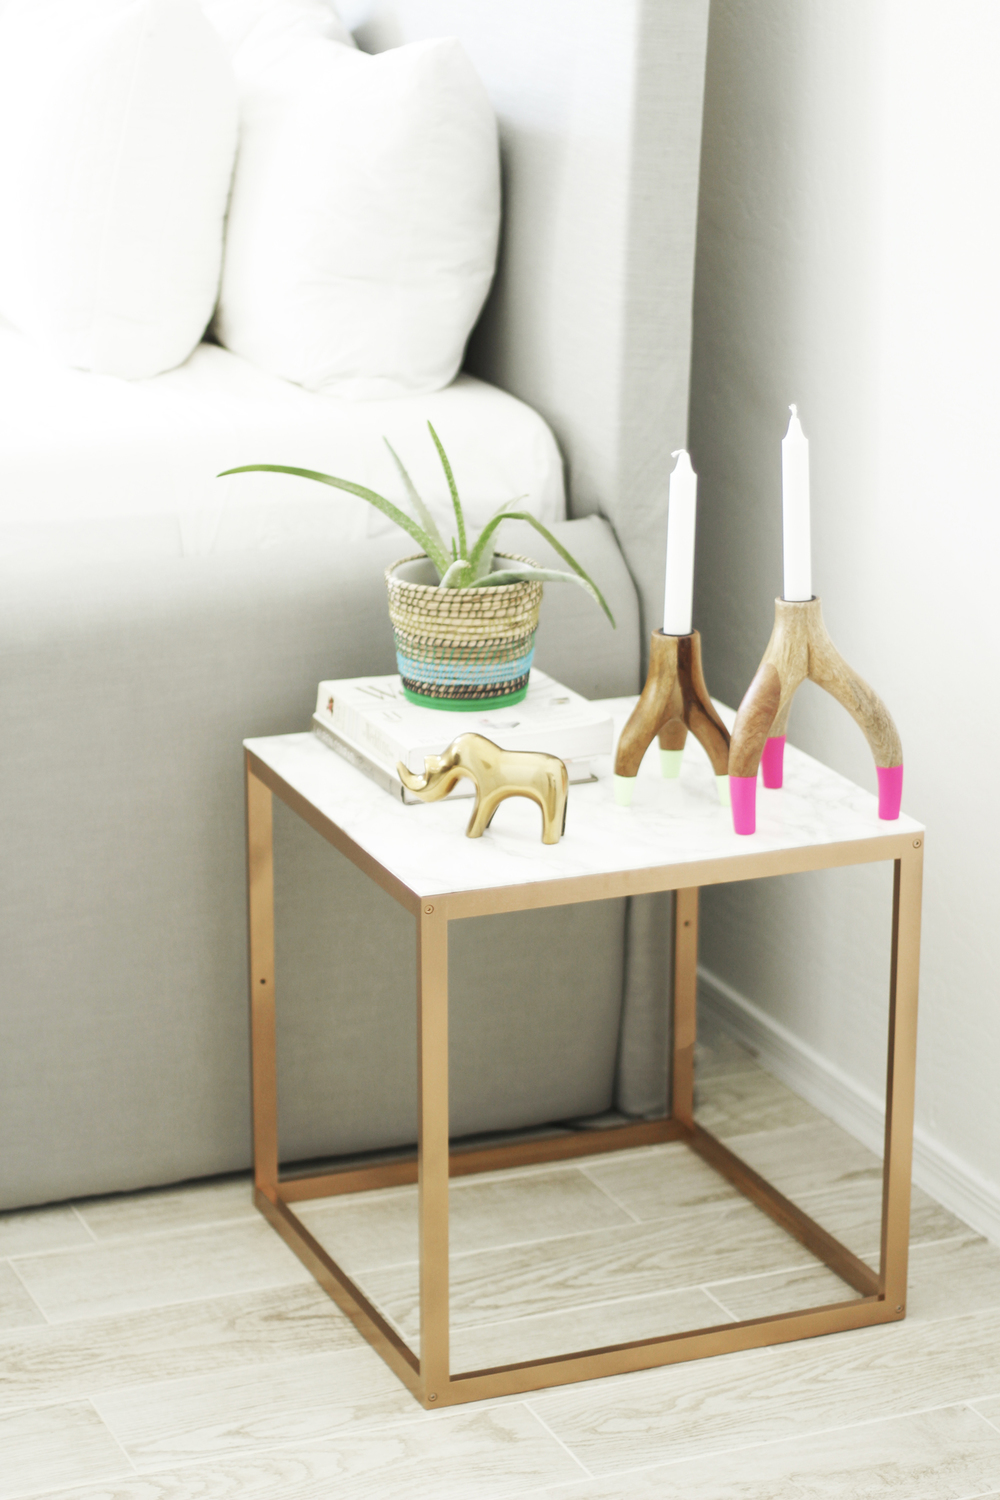 IKEA Hack Nightstand  Four Ways! — Kristi Murphy  DIY Ideas -> Ikea Wandregal Hack